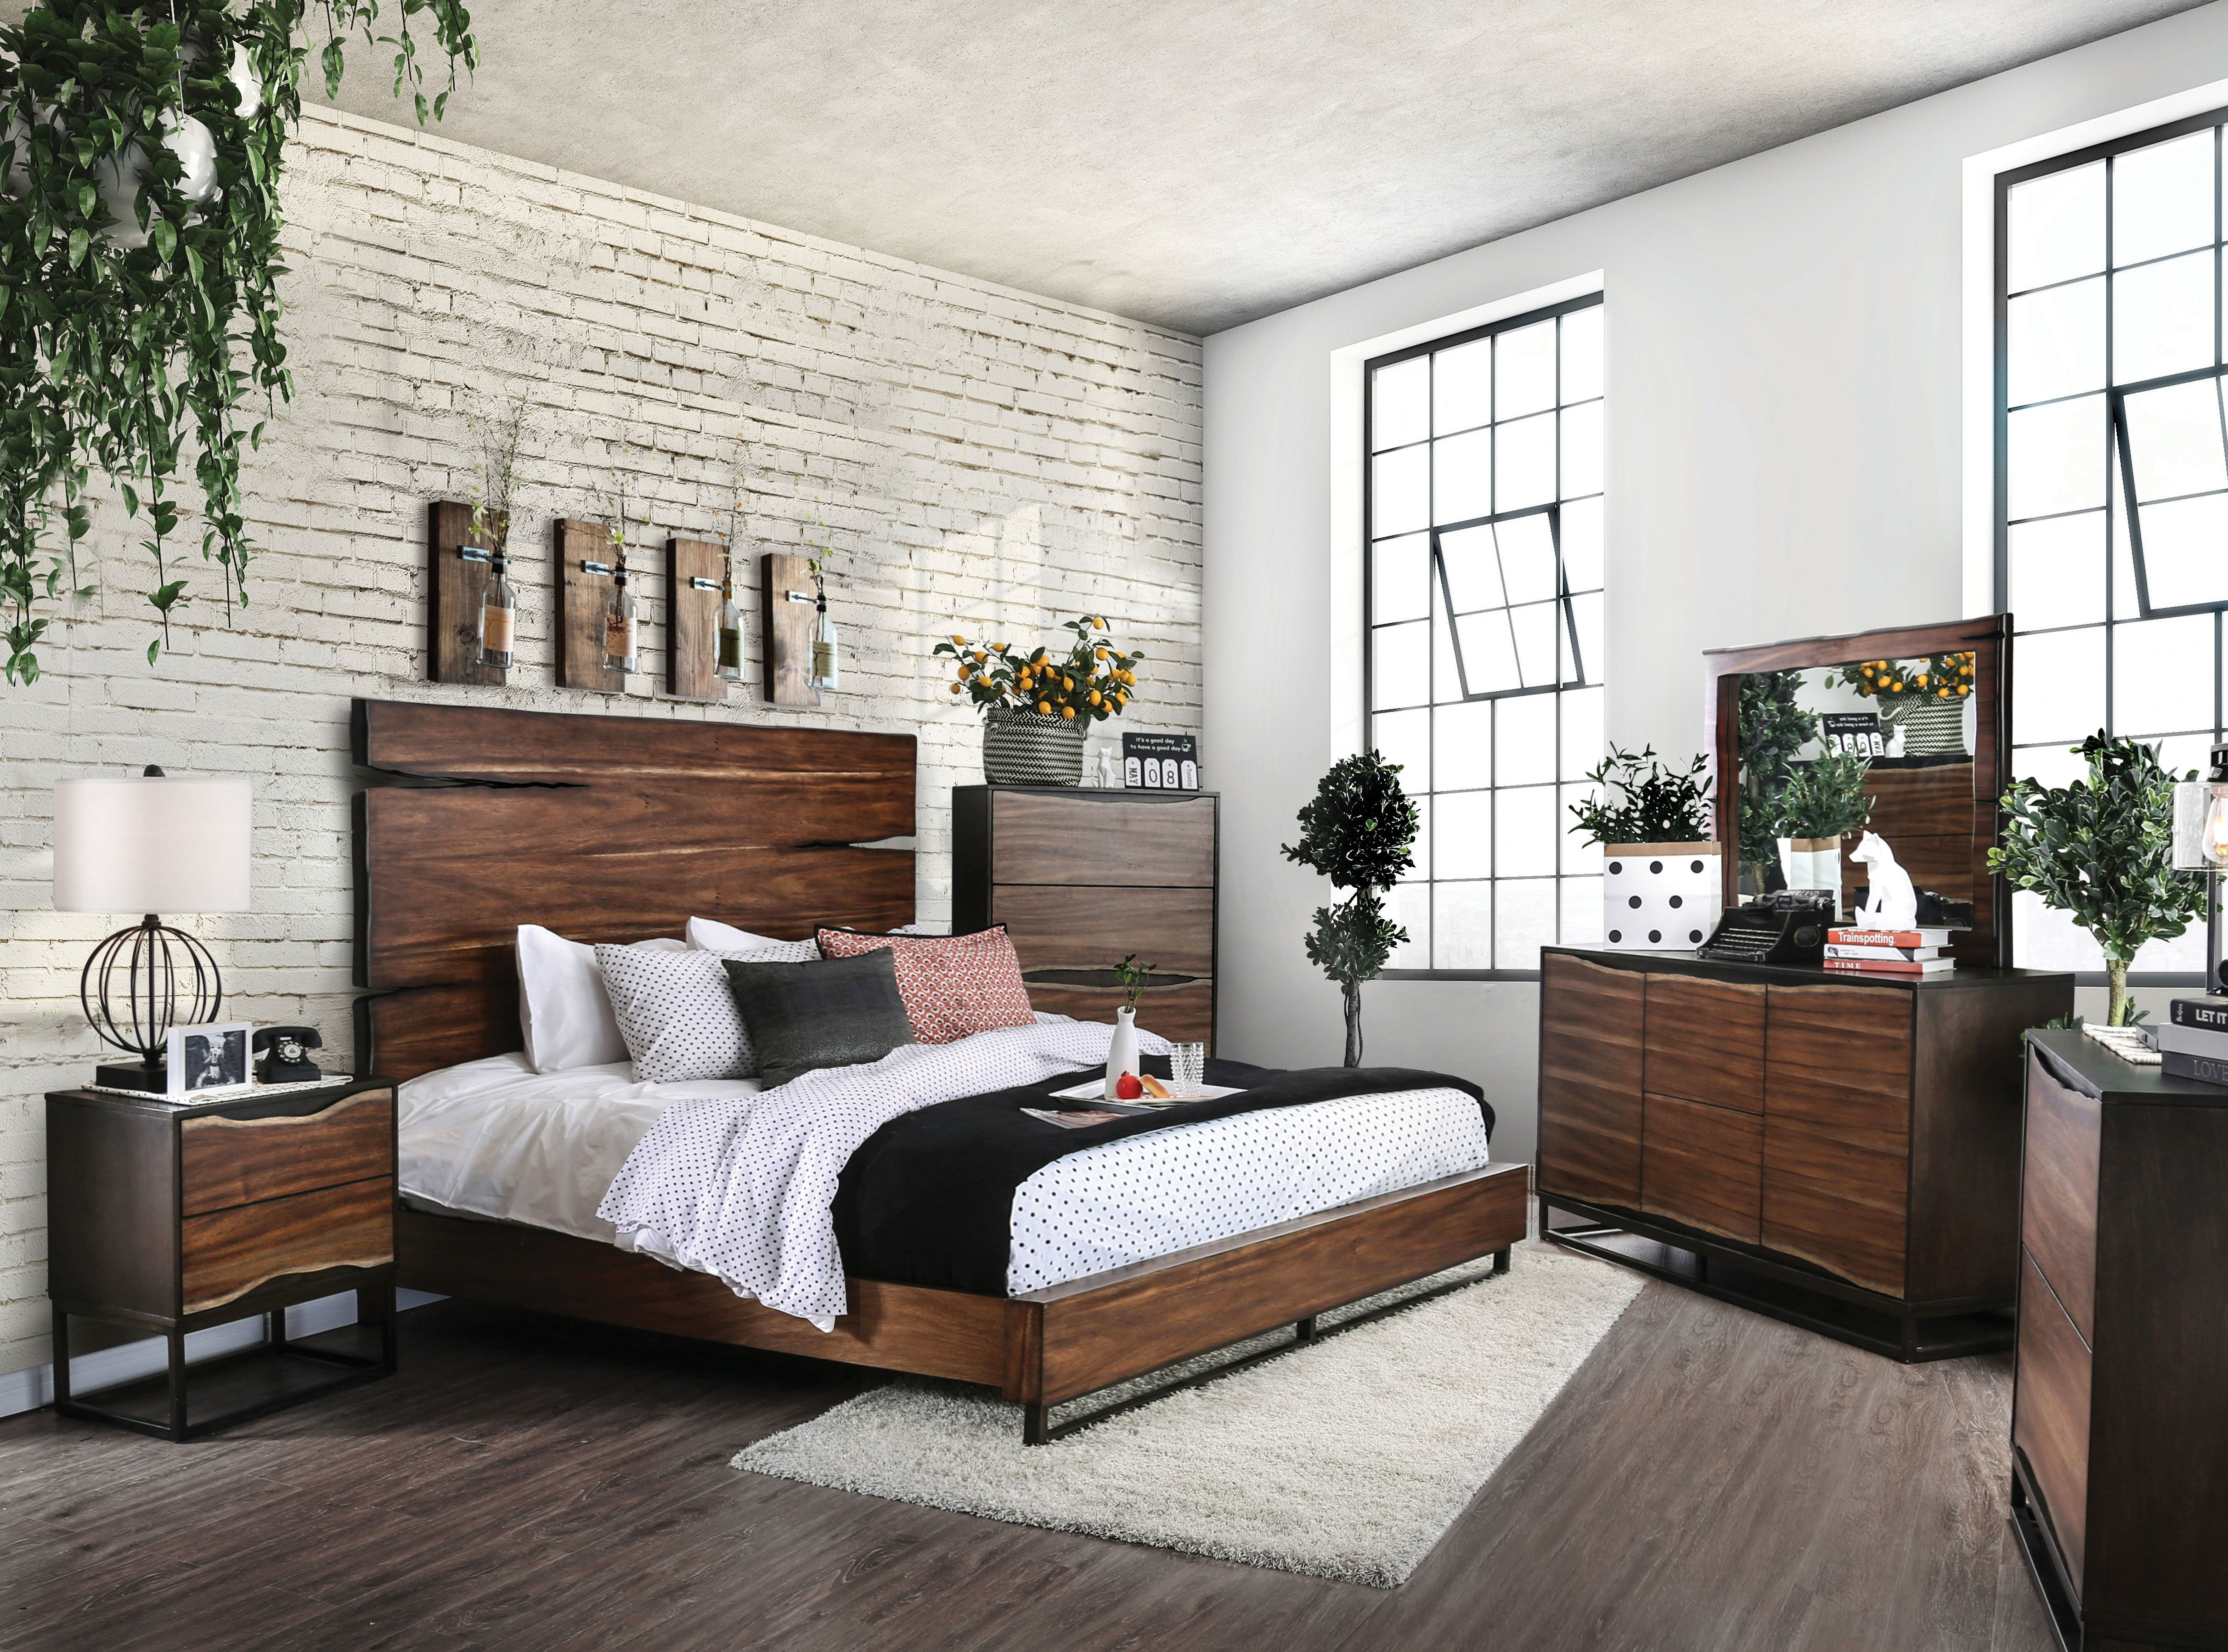 11 Ideas When Is The Best Time To Buy Bedroom Furniture Should Be